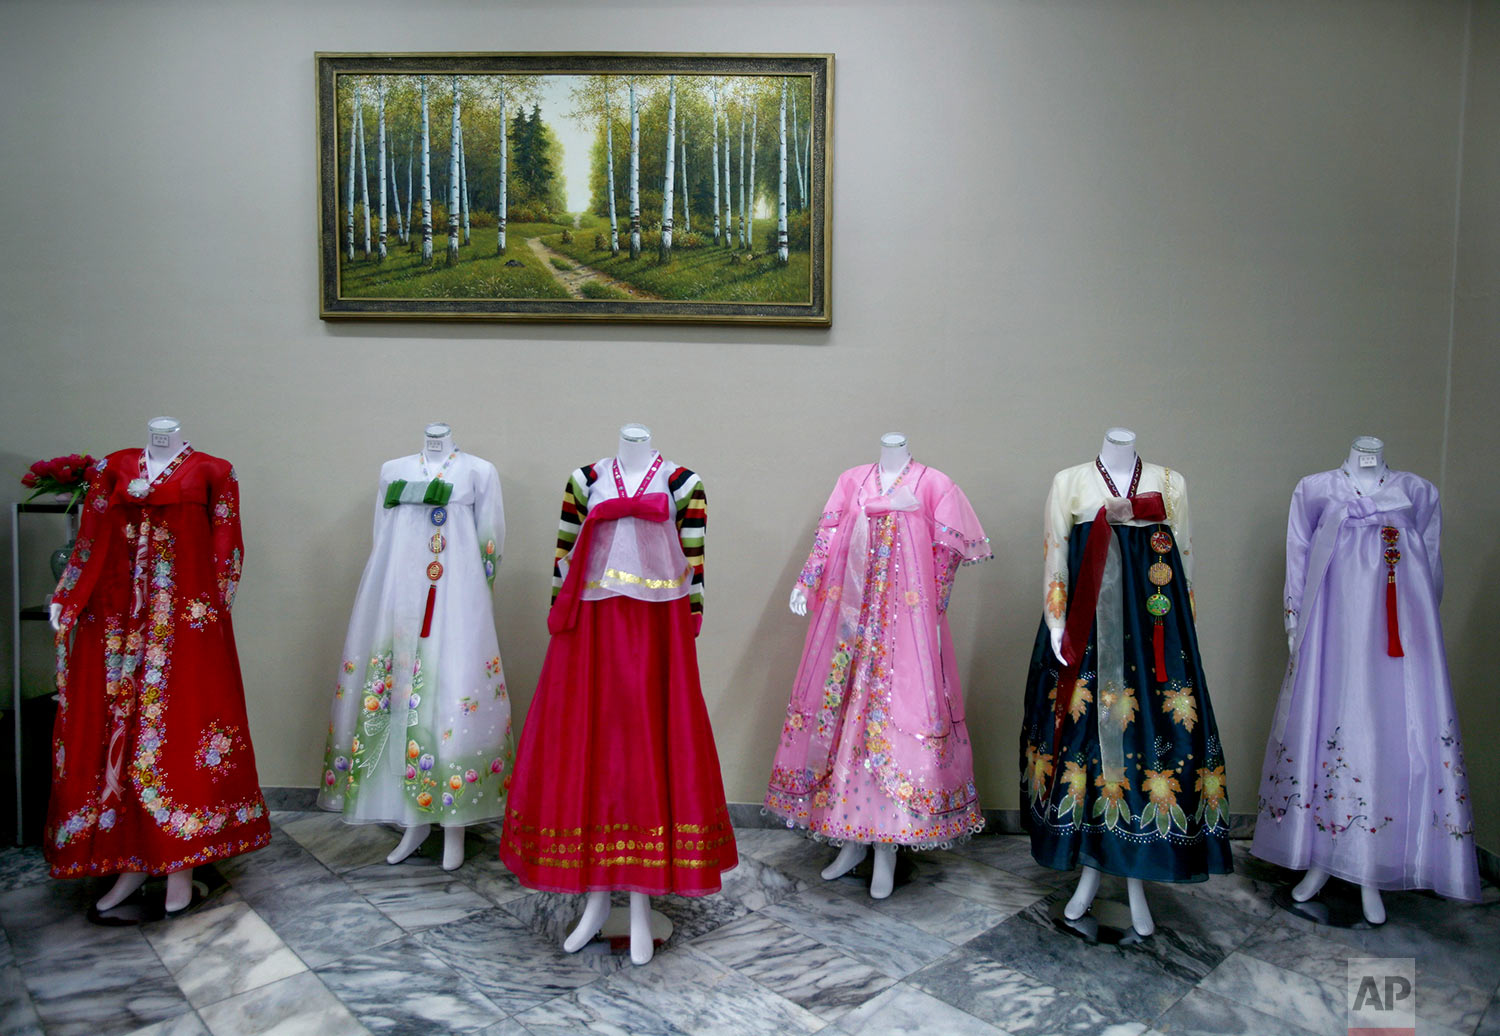 Dresses are displayed on mannequins at a hotel gift shop in Pyongyang, North Korea, on Feb. 27, 2008. (AP Photo/David Guttenfelder)